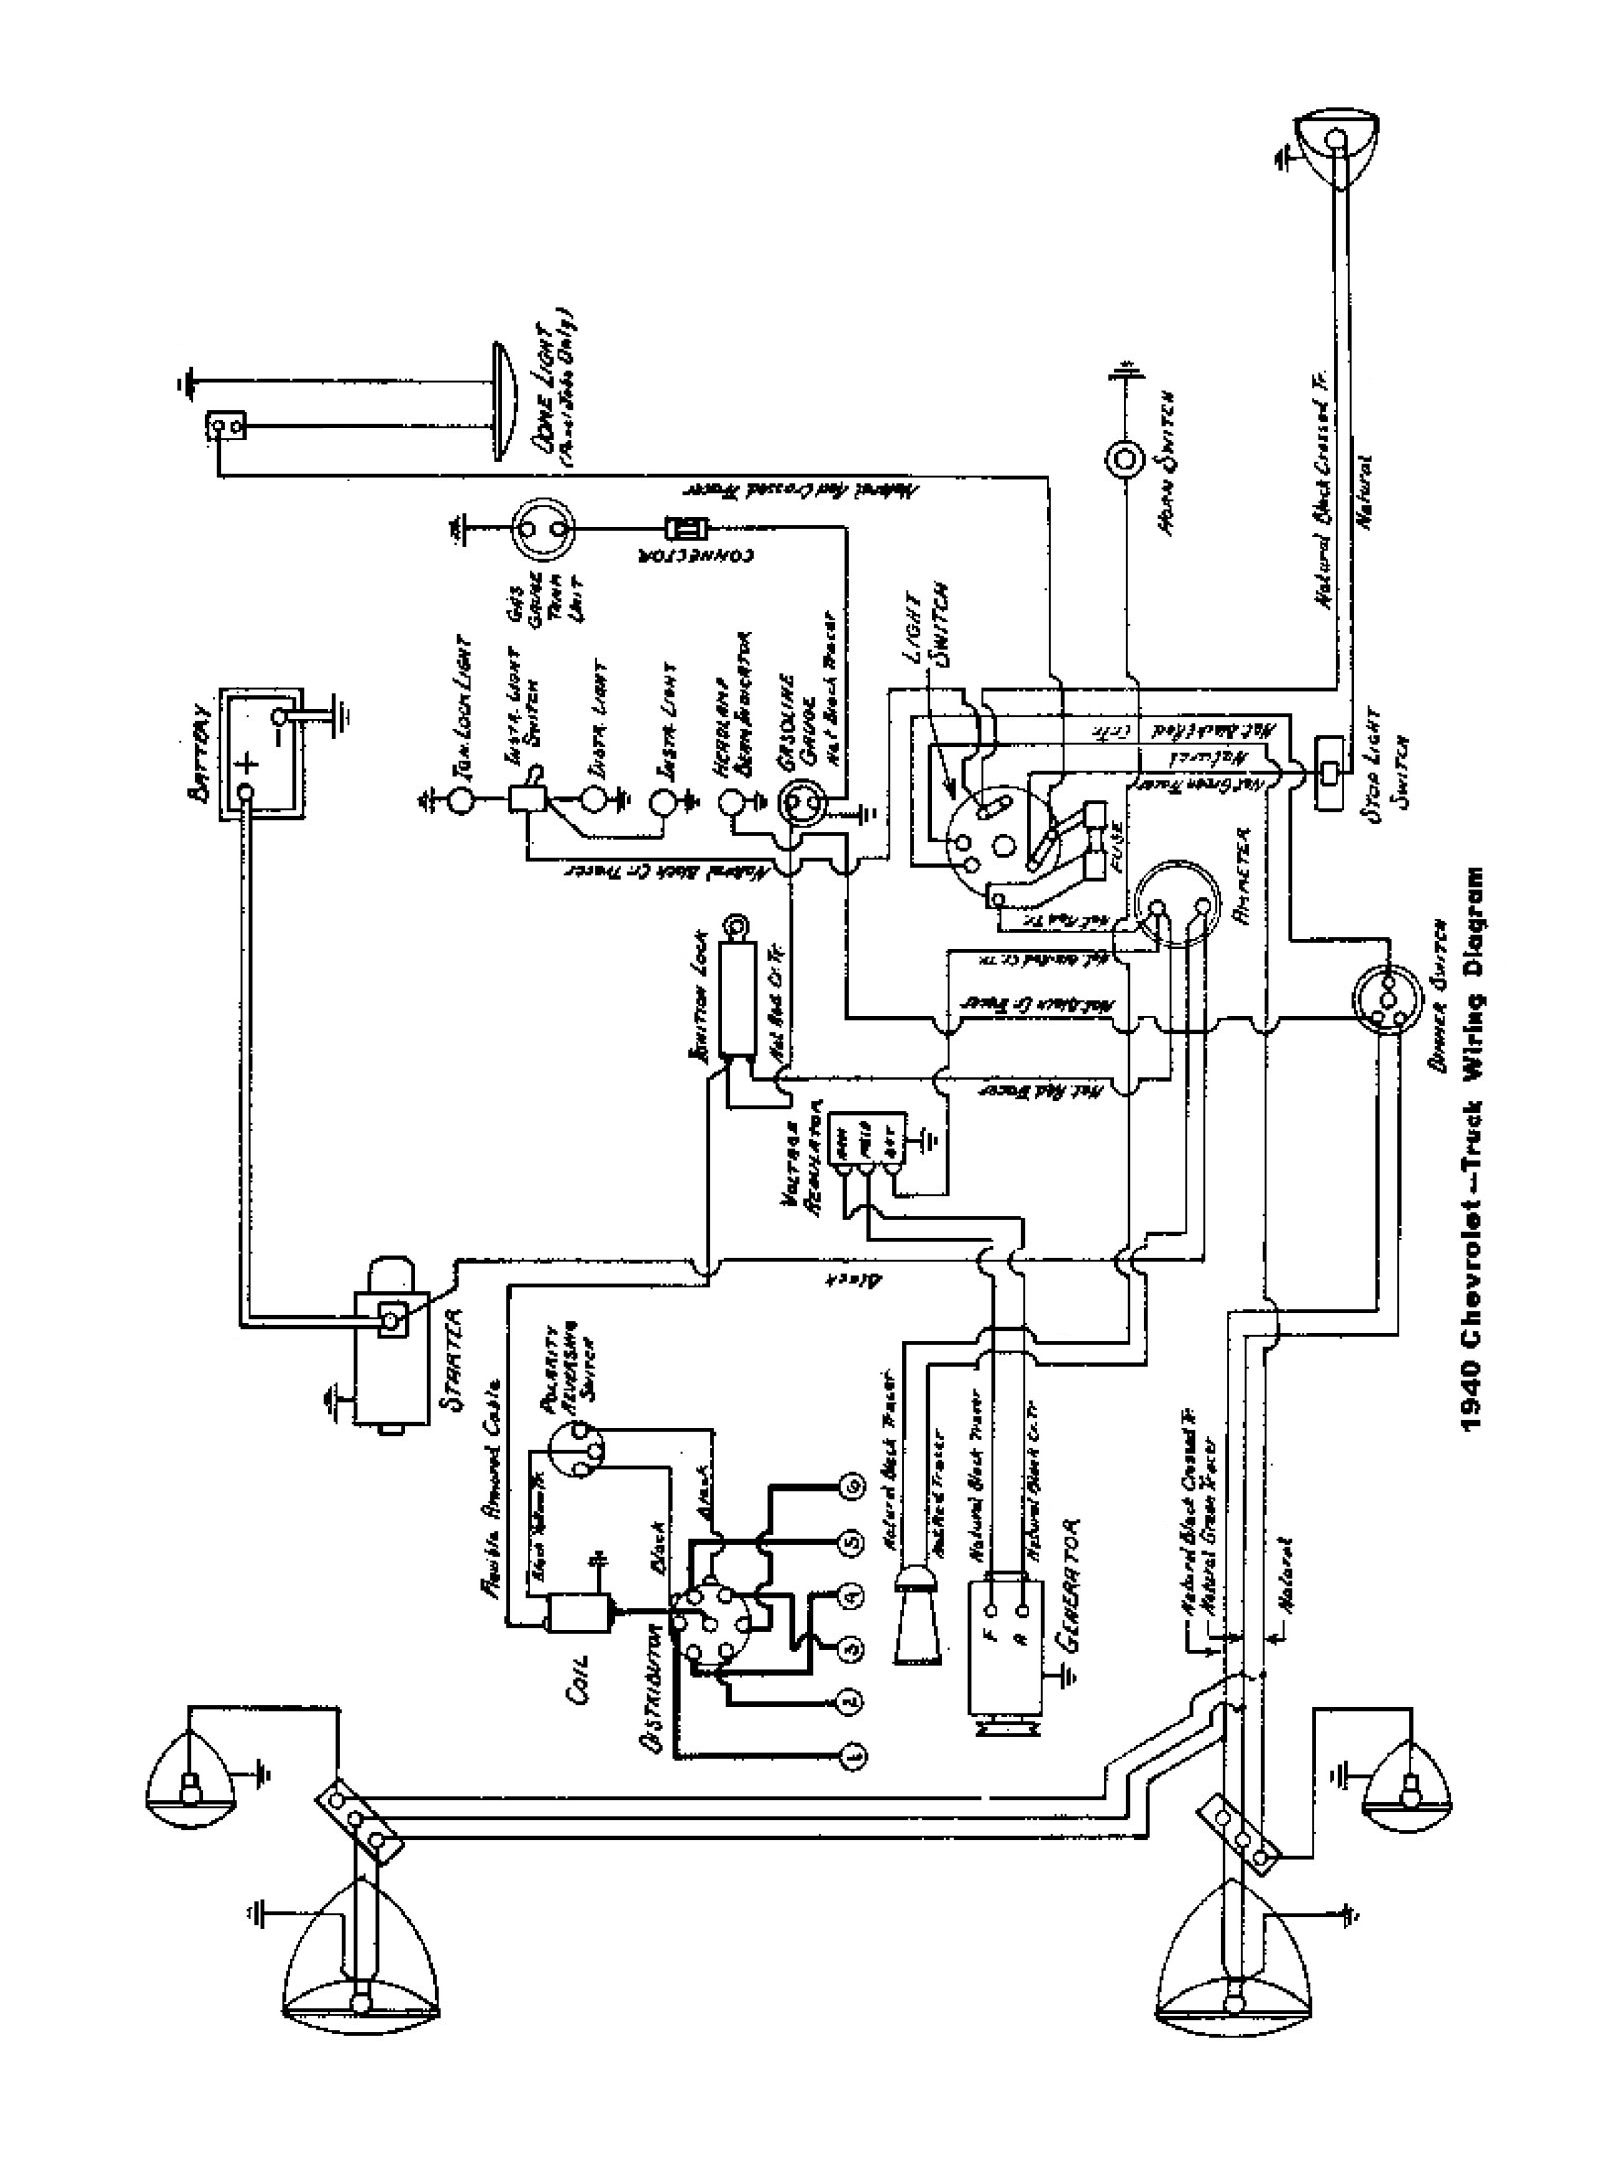 40truck 1950 chevy truck wiring harness on 1950 download wirning diagrams chevy truck wiring harness at fashall.co